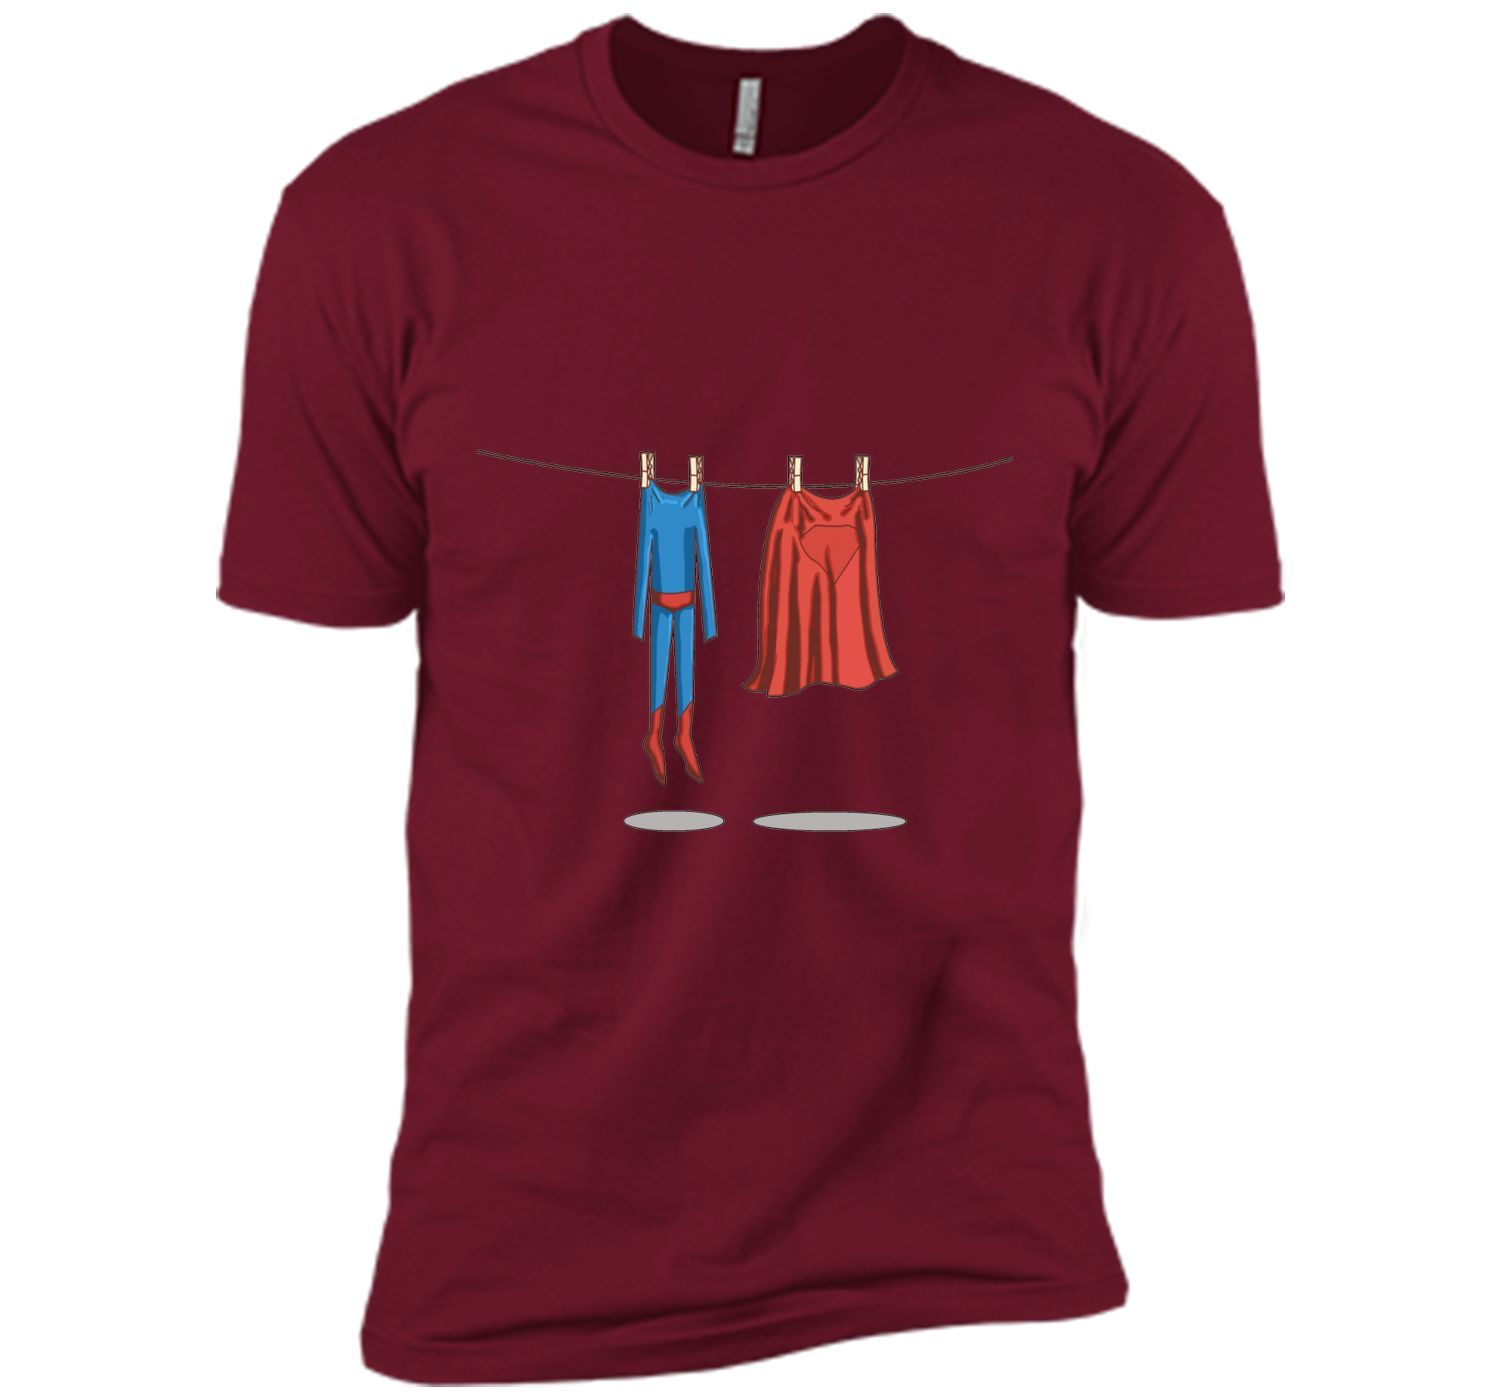 Super laundry tshirt